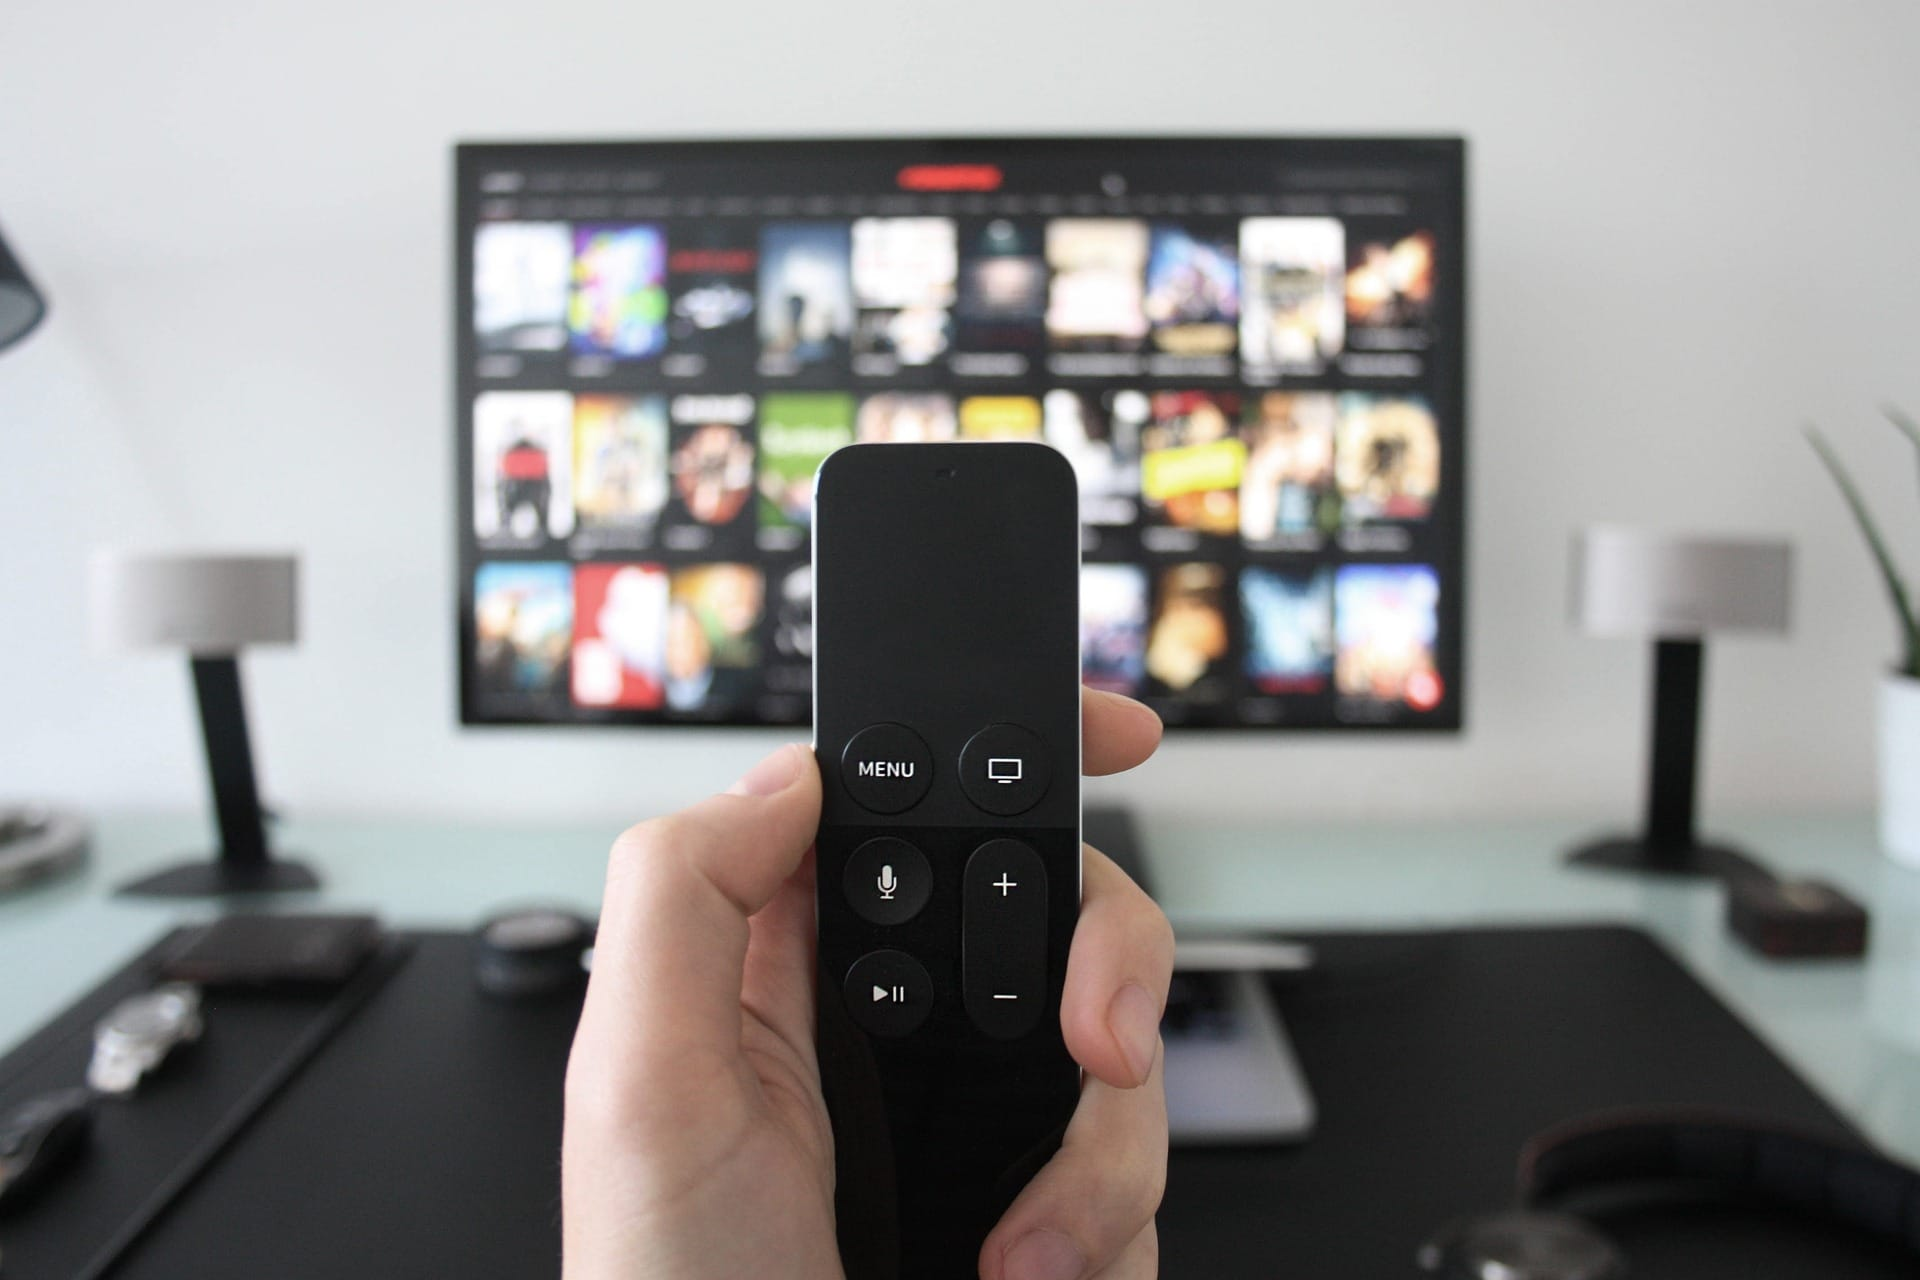 Photo of a person holding a remote in front of a TV.